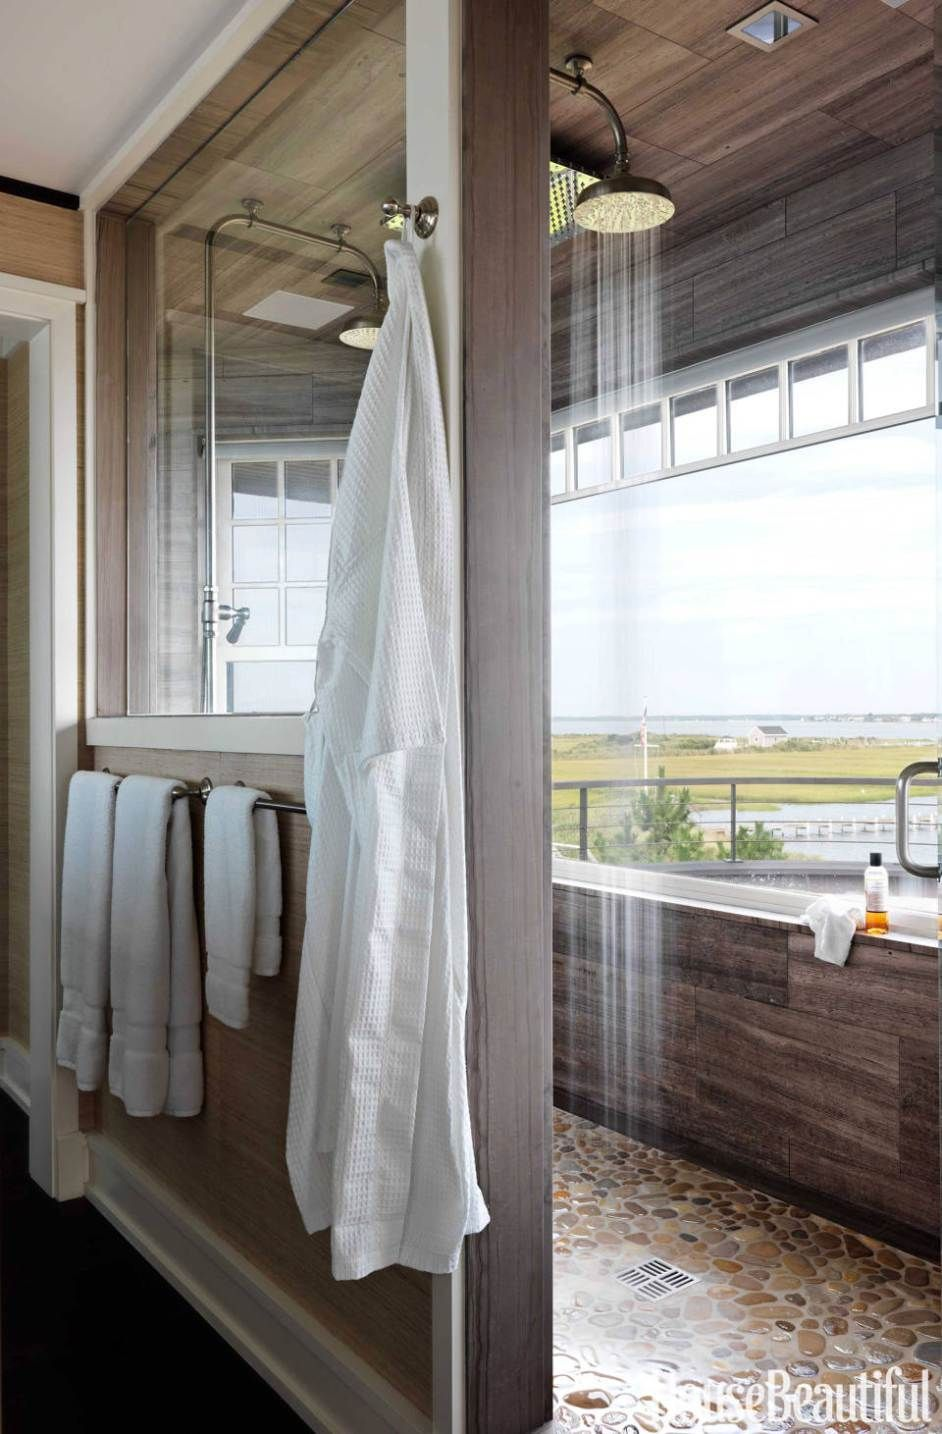 Outside window design ideas  pin by veronicas vision on bathrooms  pinterest  bath and barn